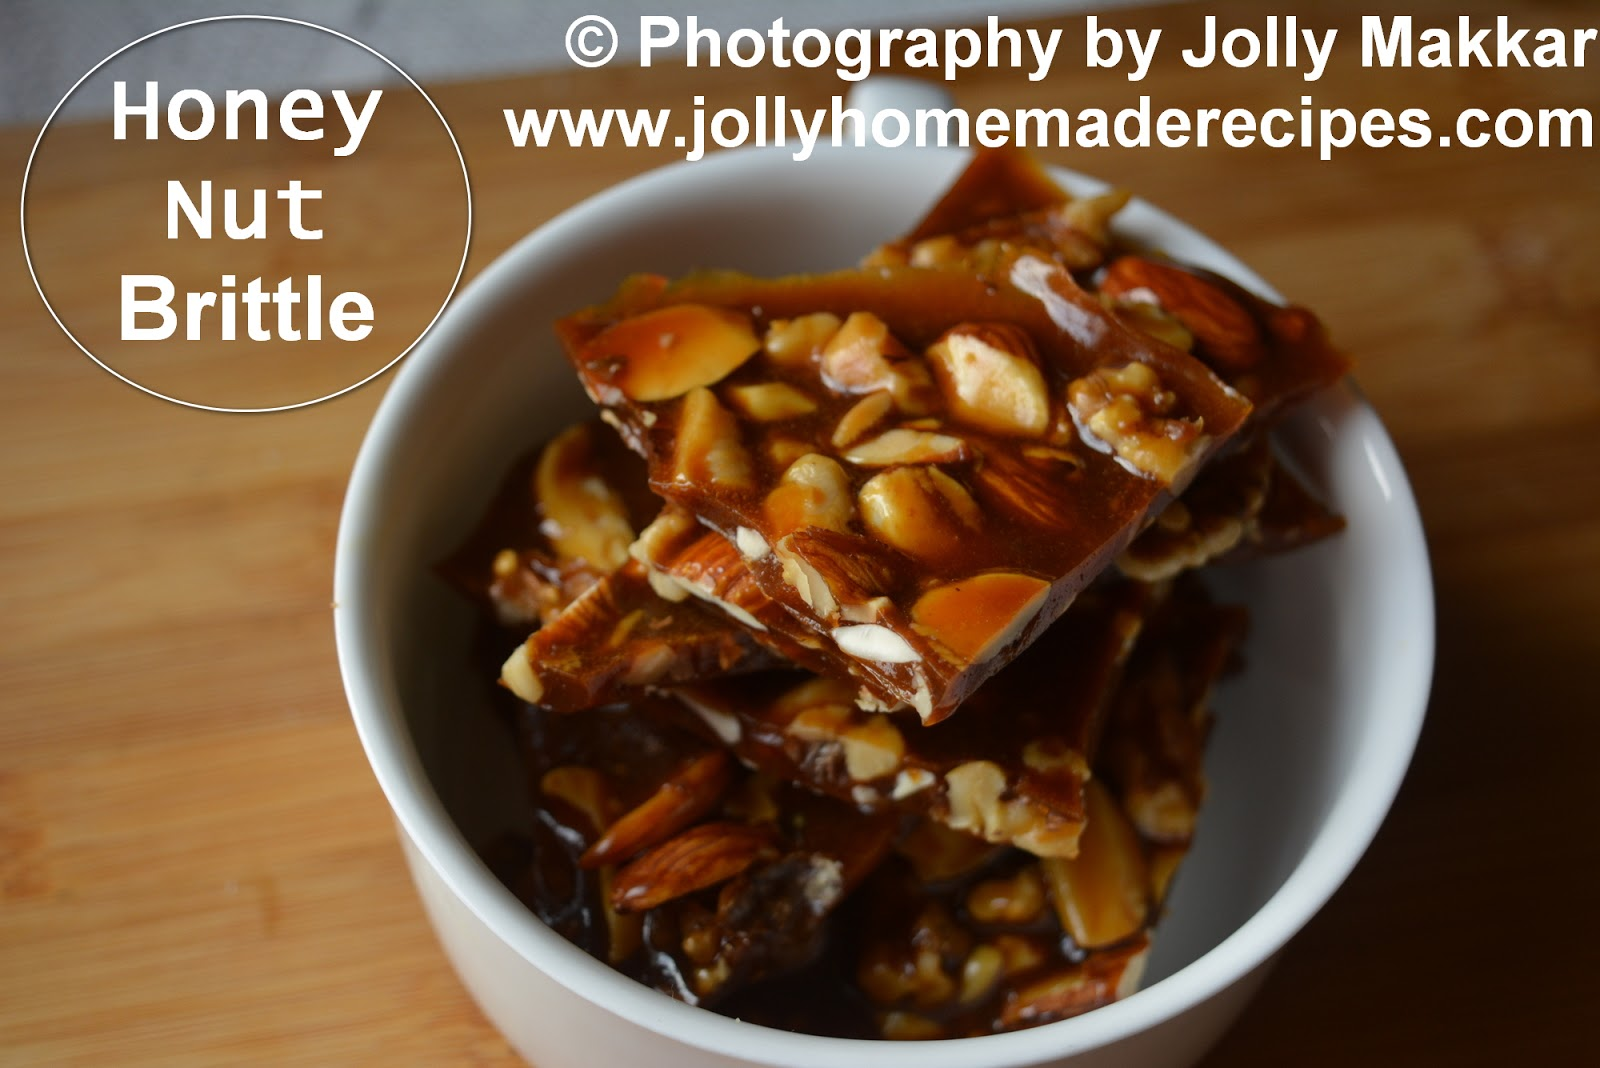 honey almond brittle